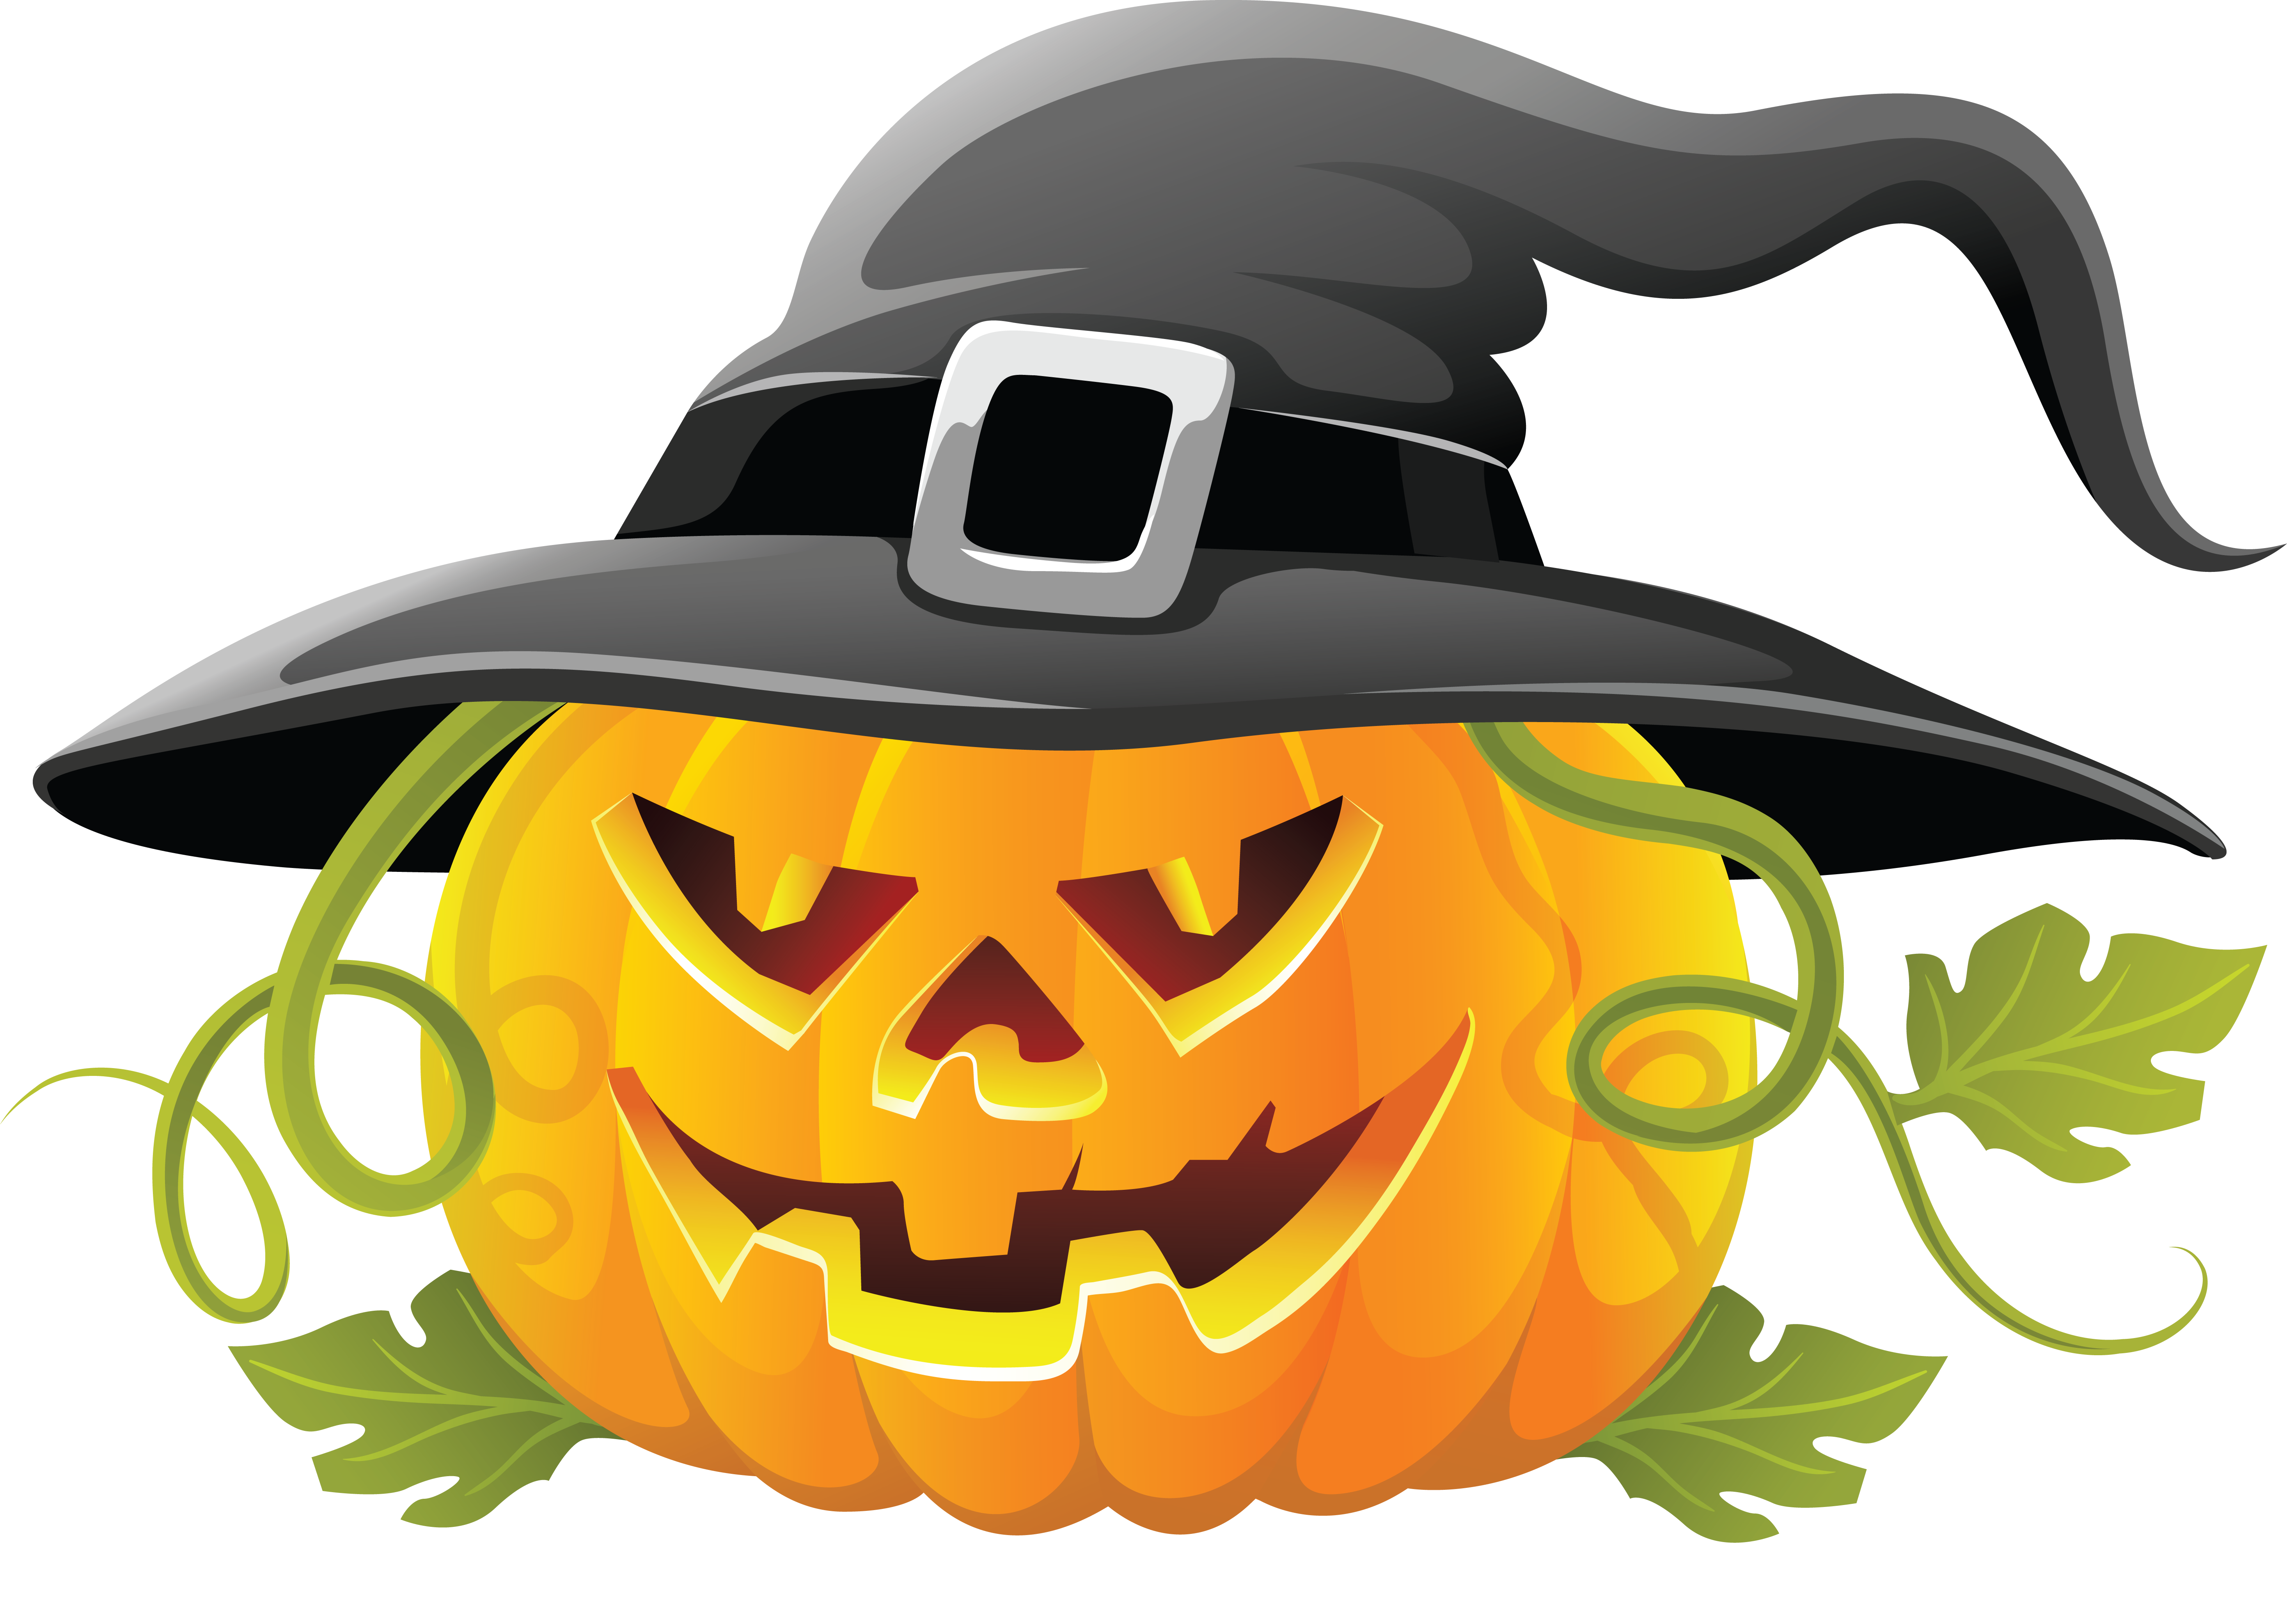 Download Halloween Png Hd HQ PNG Image FreePNGImg